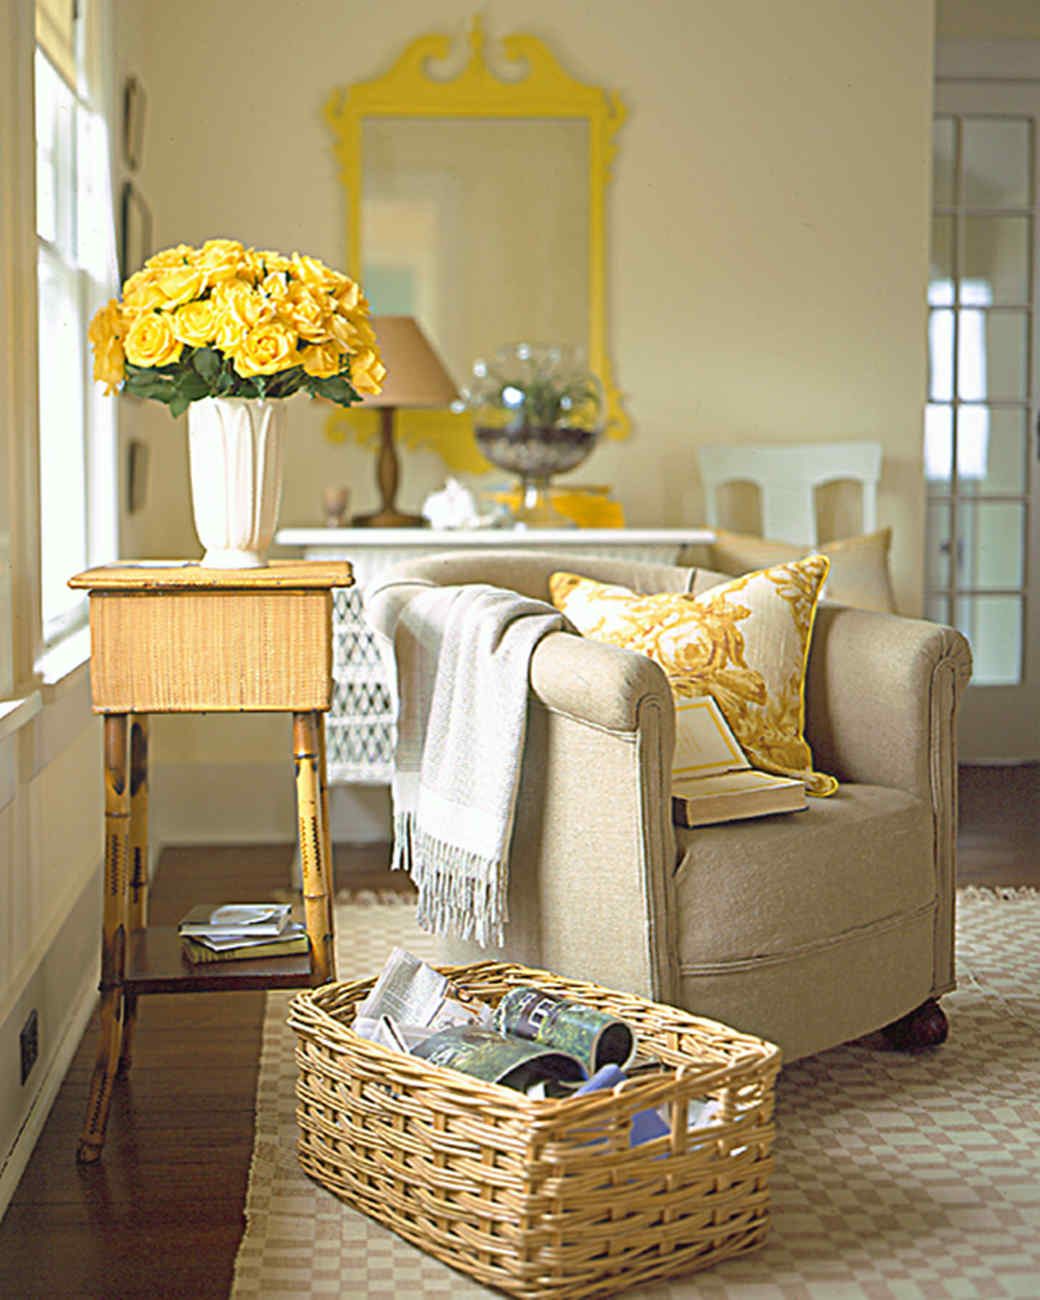 How To Decorate A Yellow Bedroom Decorating With Yellow And Orange Martha Stewart